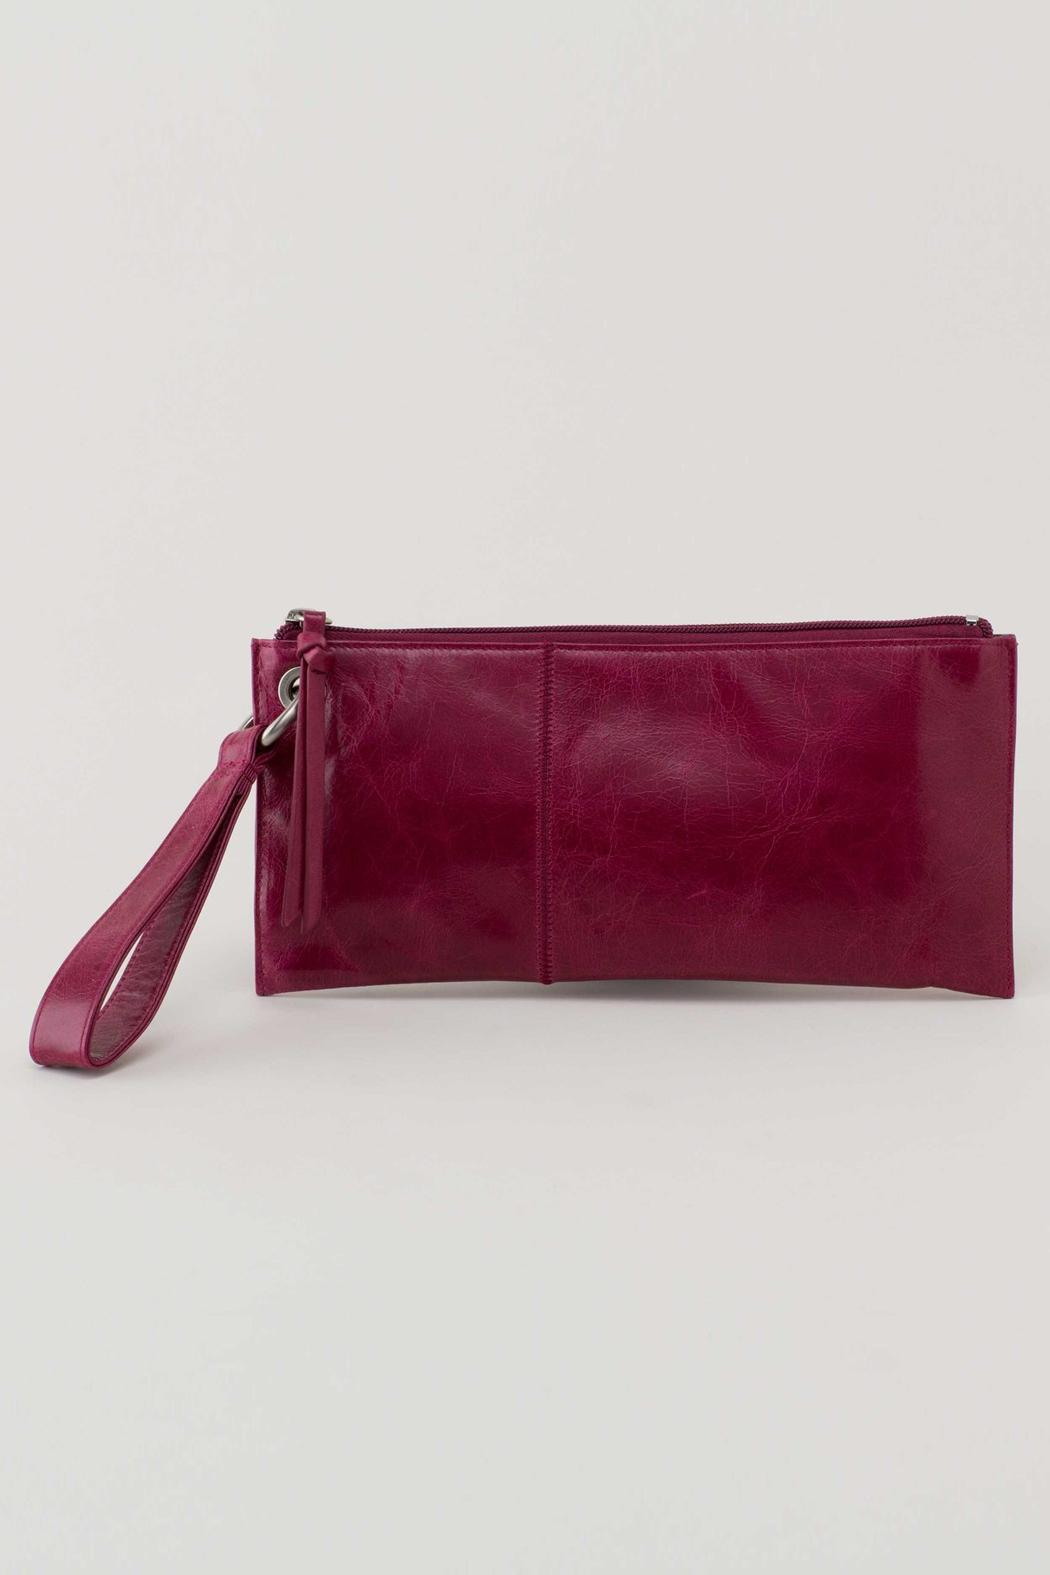 VIDA Statement Clutch - lush life by VIDA 2rCogL